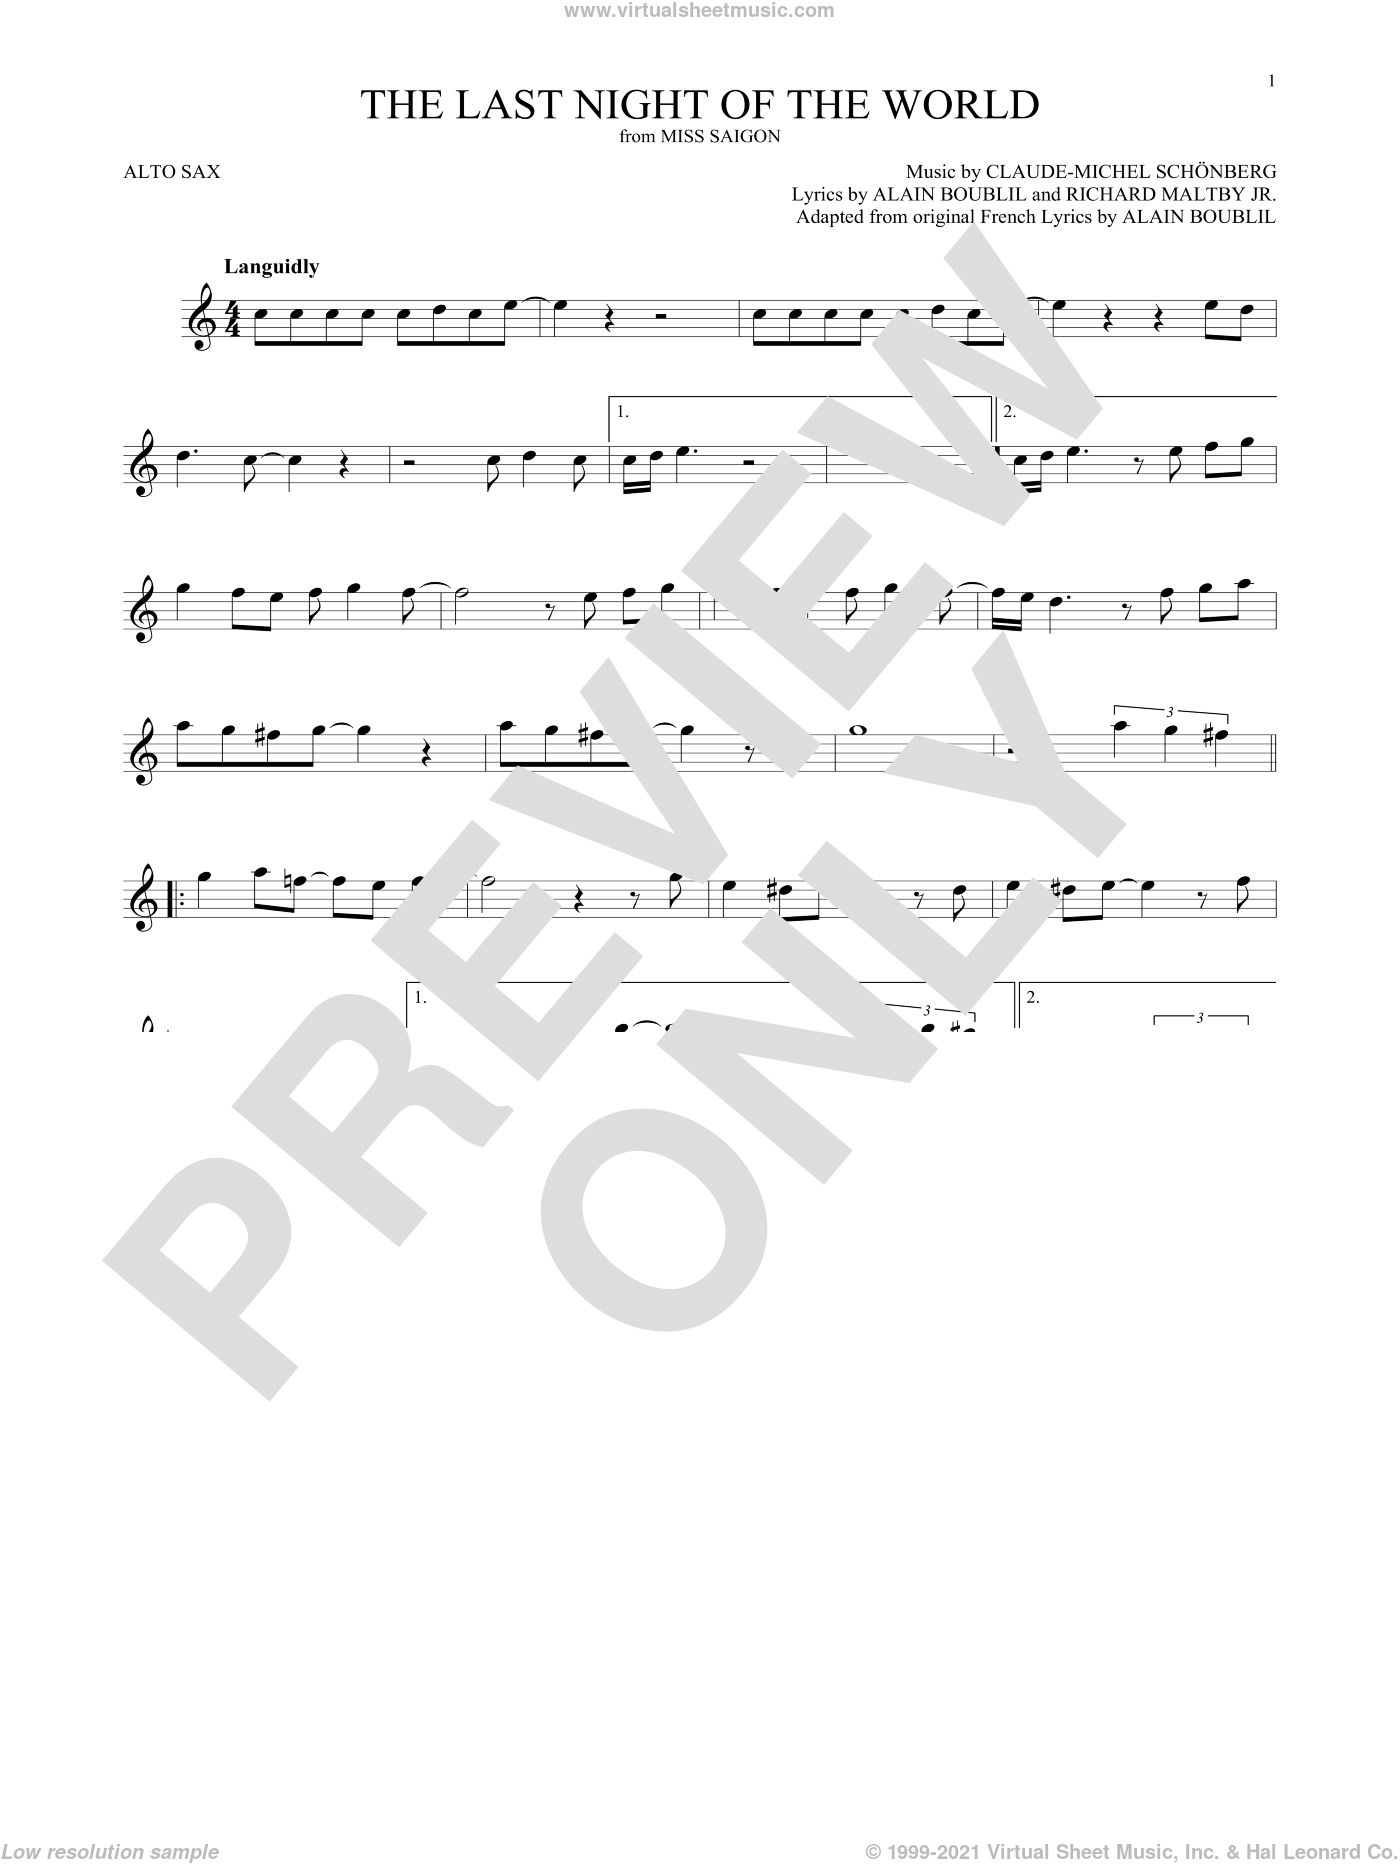 The Last Night Of The World (from Miss Saigon) sheet music for alto saxophone solo by Alain Boublil, Boublil and Schonberg, Claude-Michel Schonberg, Claude-Michel Schonberg and Richard Maltby, Jr., intermediate skill level